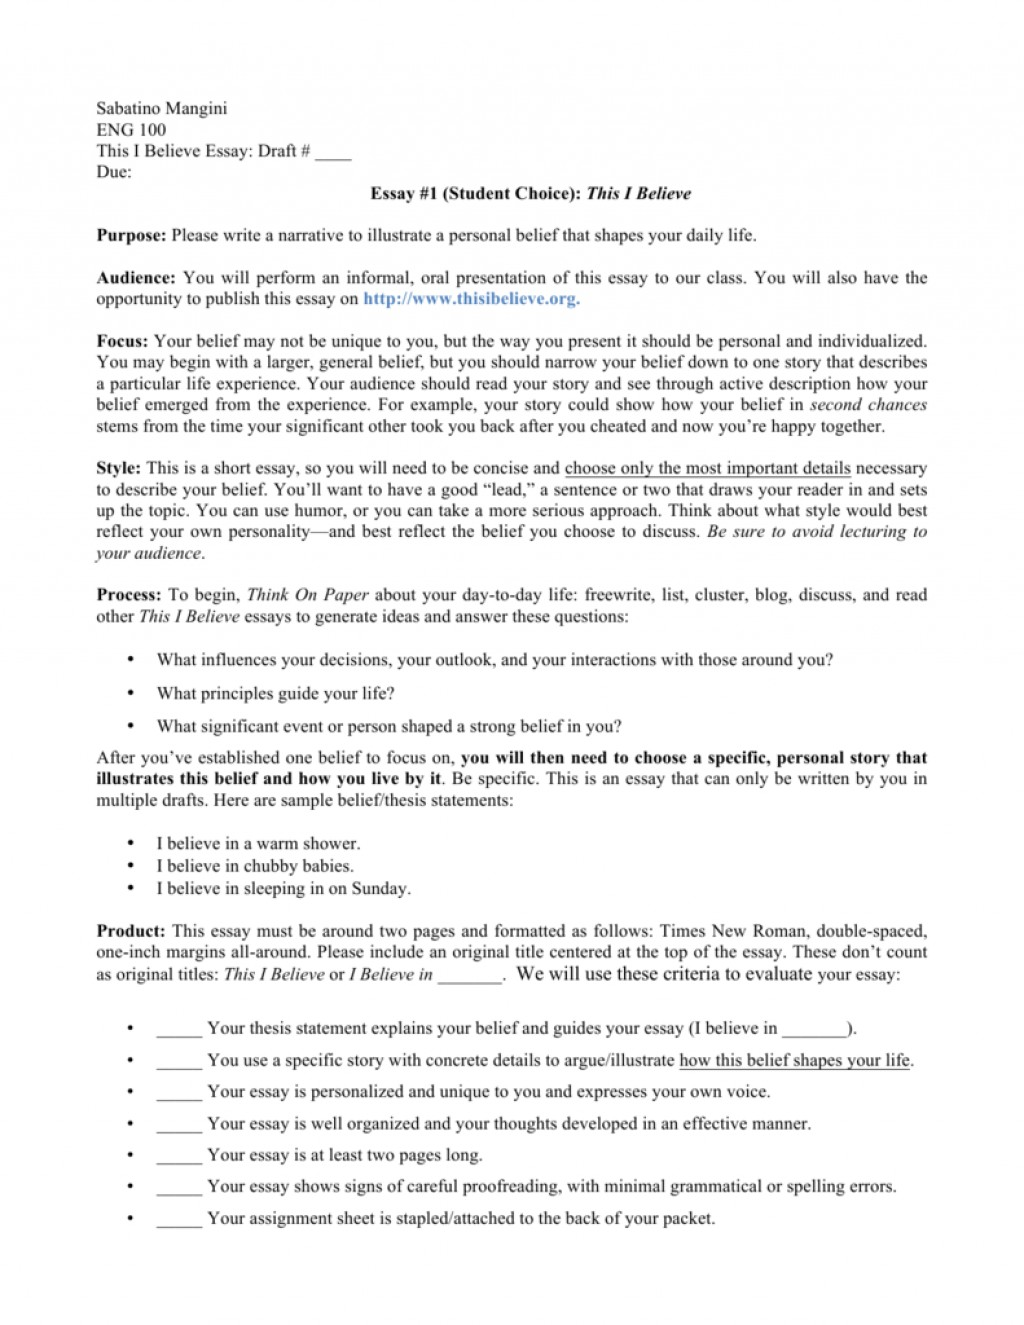 002 Essay Example This I Believe Essays By Students 008807227 1 Wonderful Large